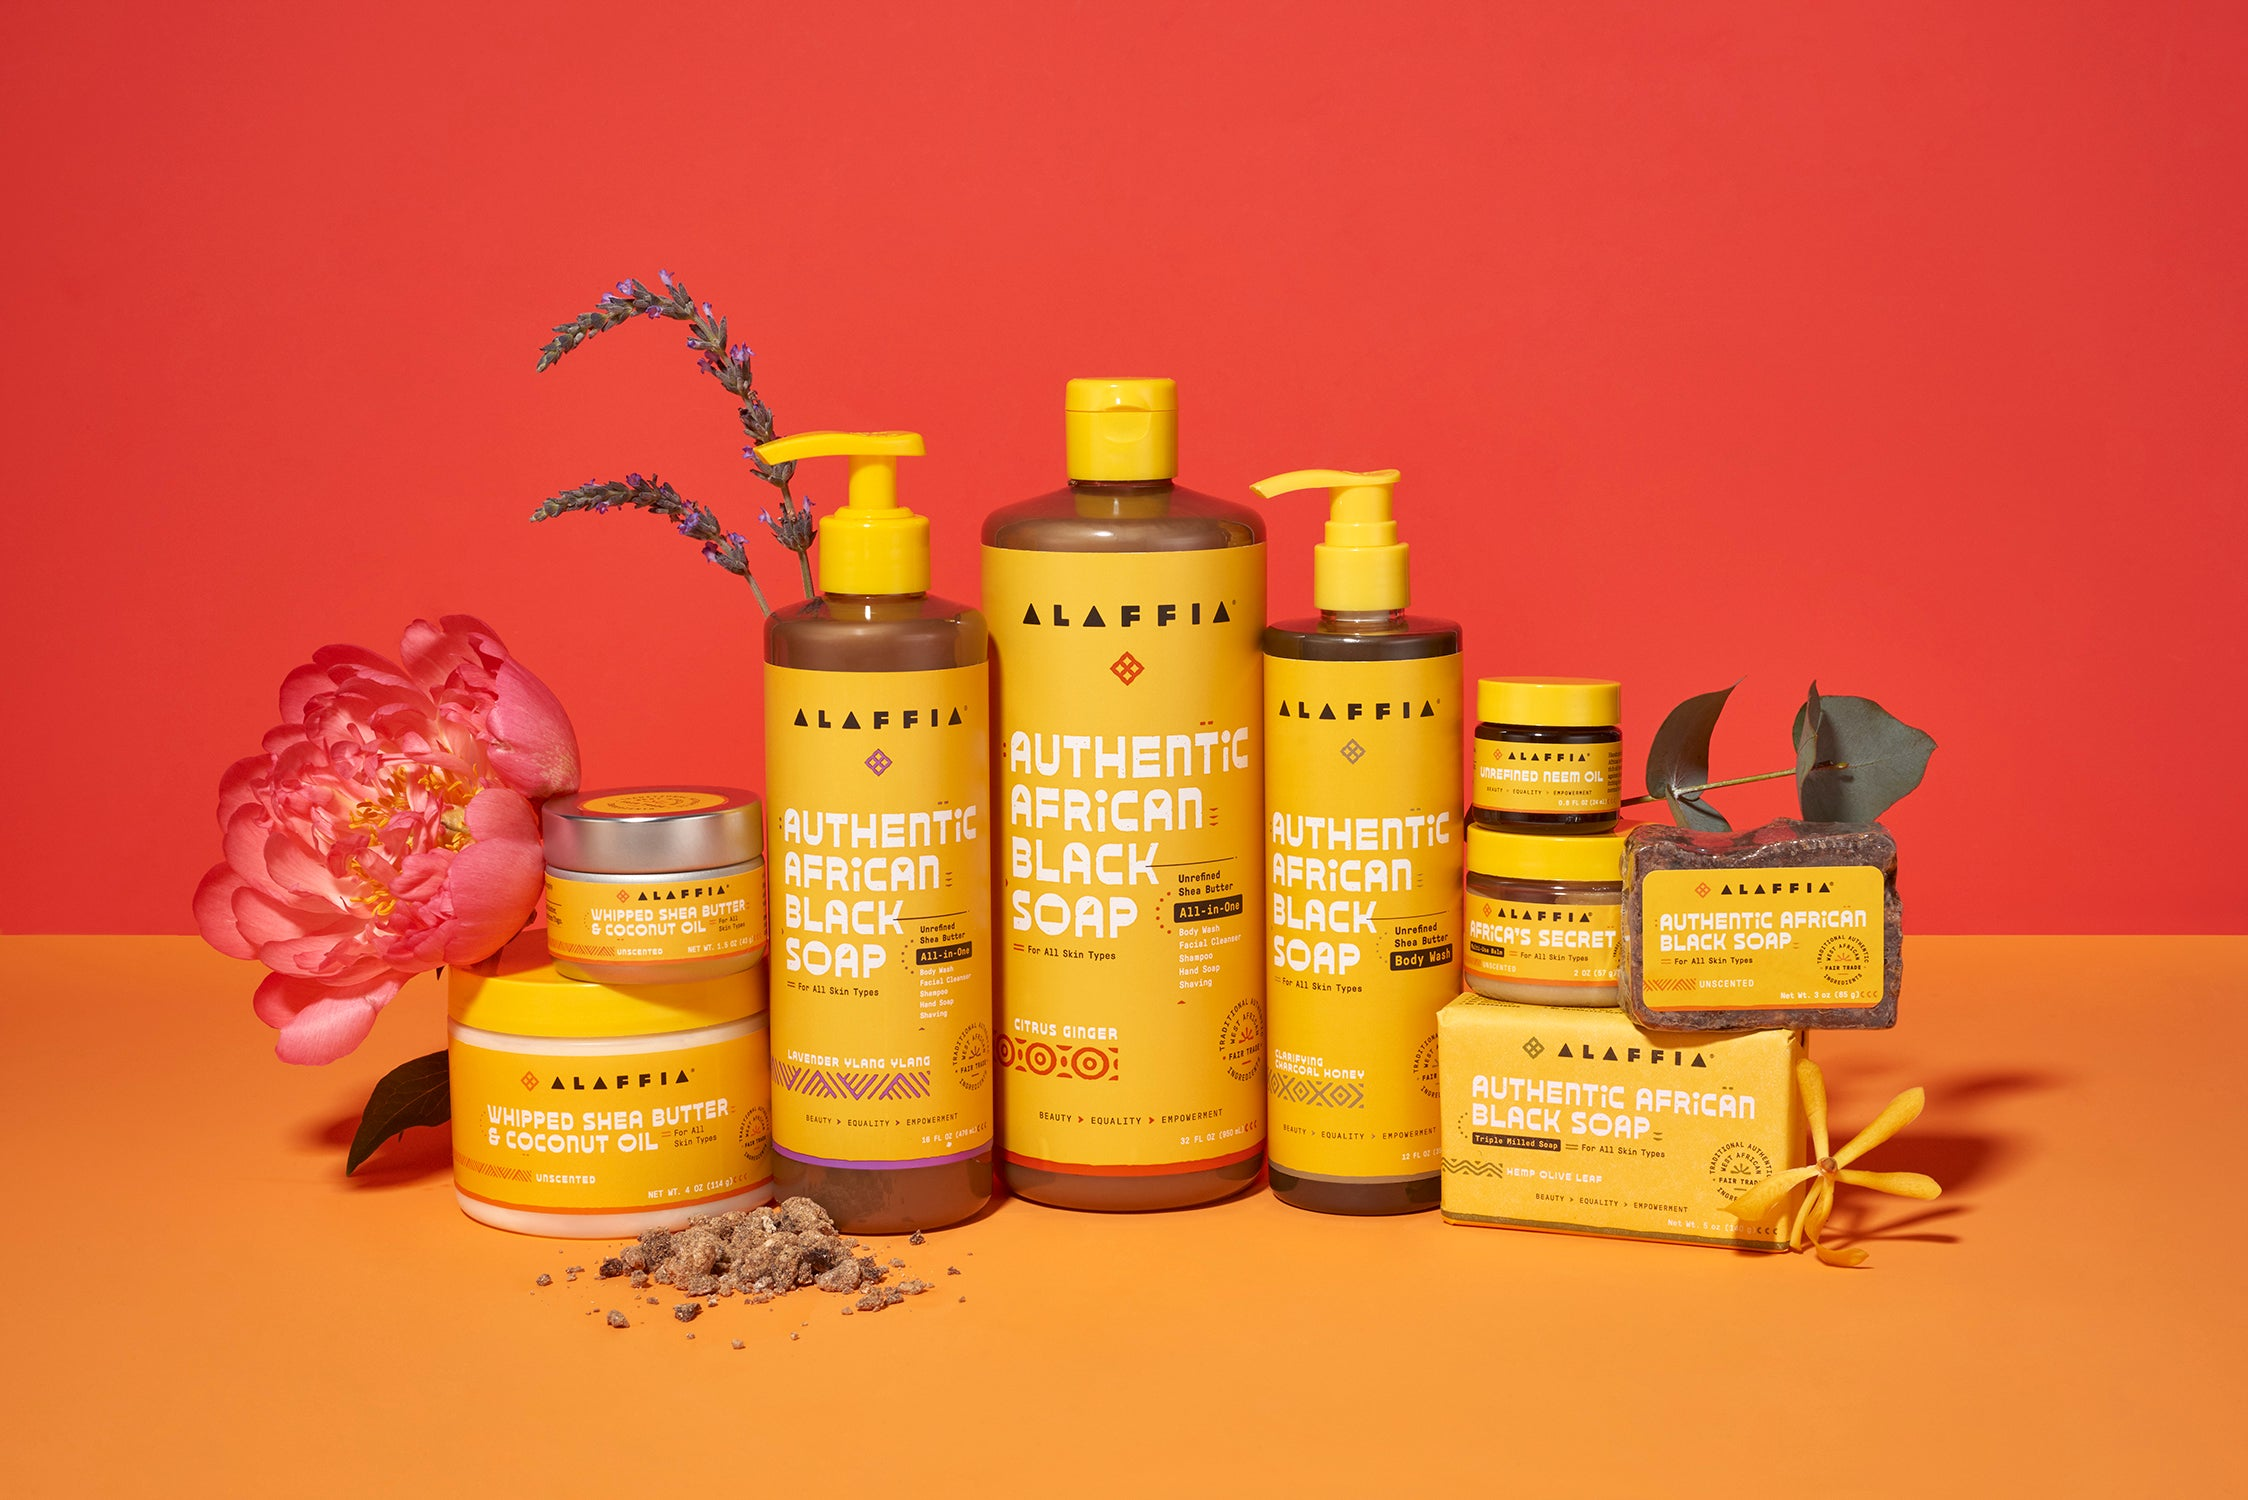 A collection of hair and skincare products from Alaffia.